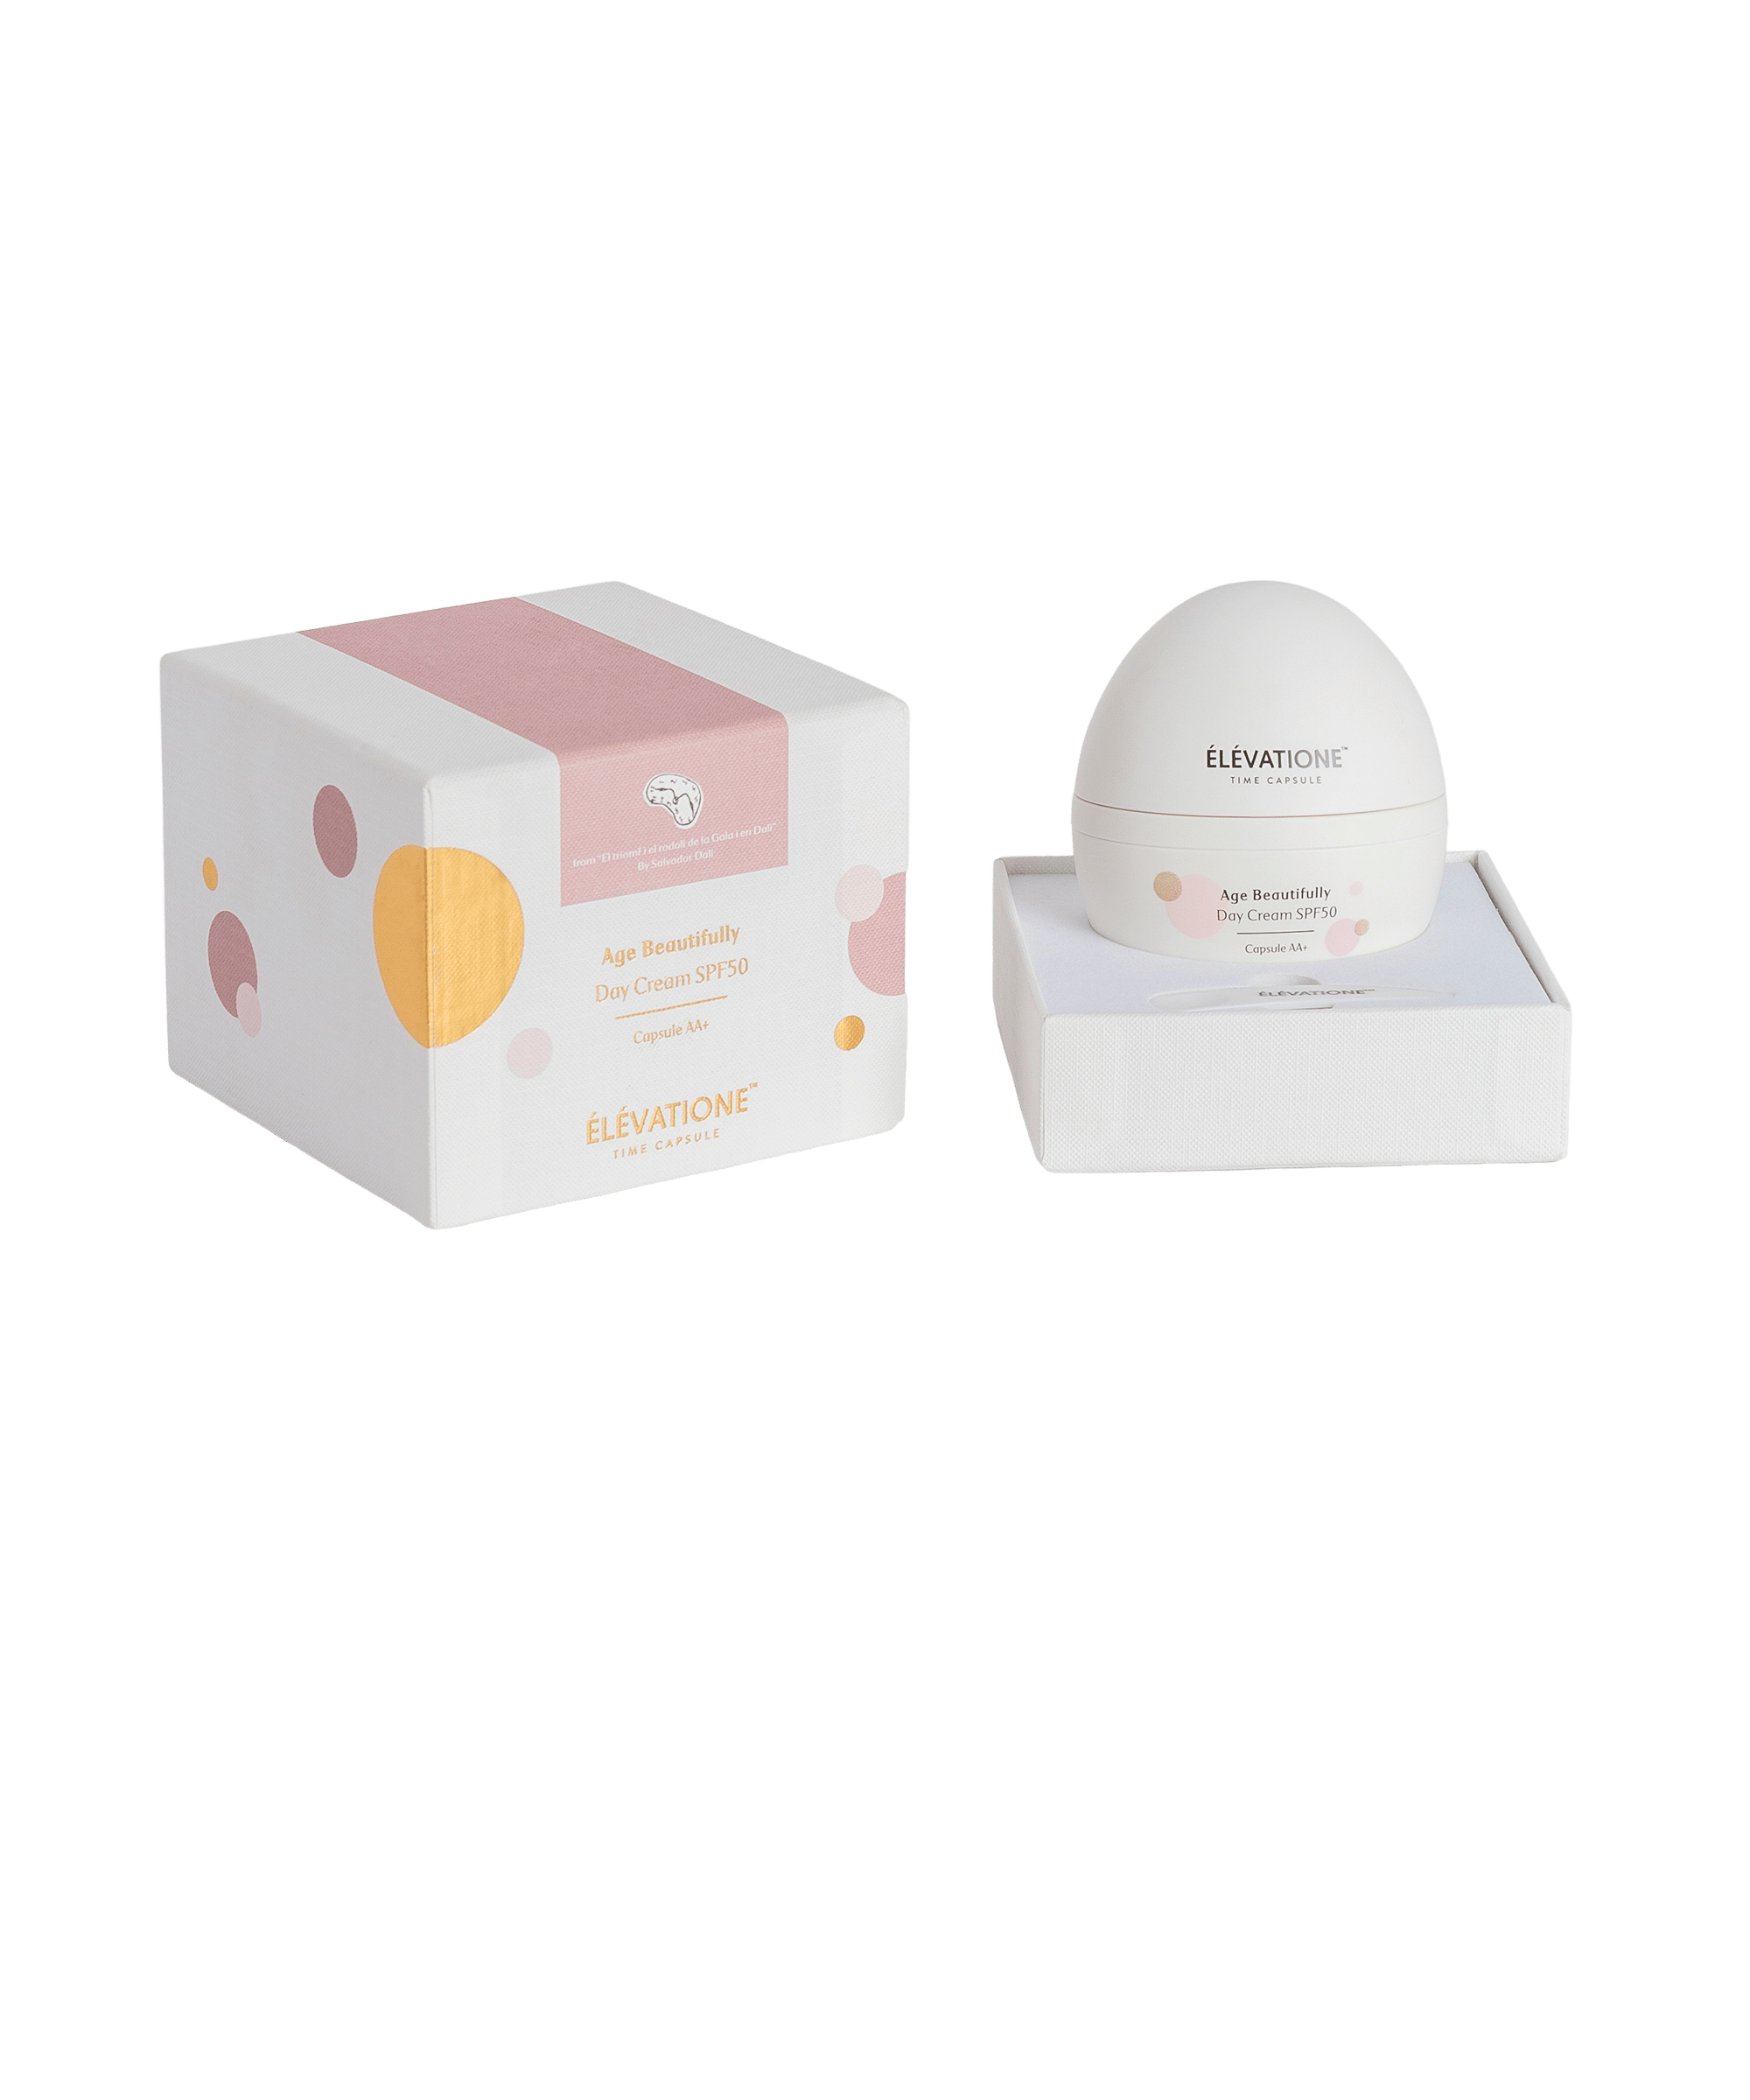 Day Cream SPF50 Ultra Moisturizing Face Cream